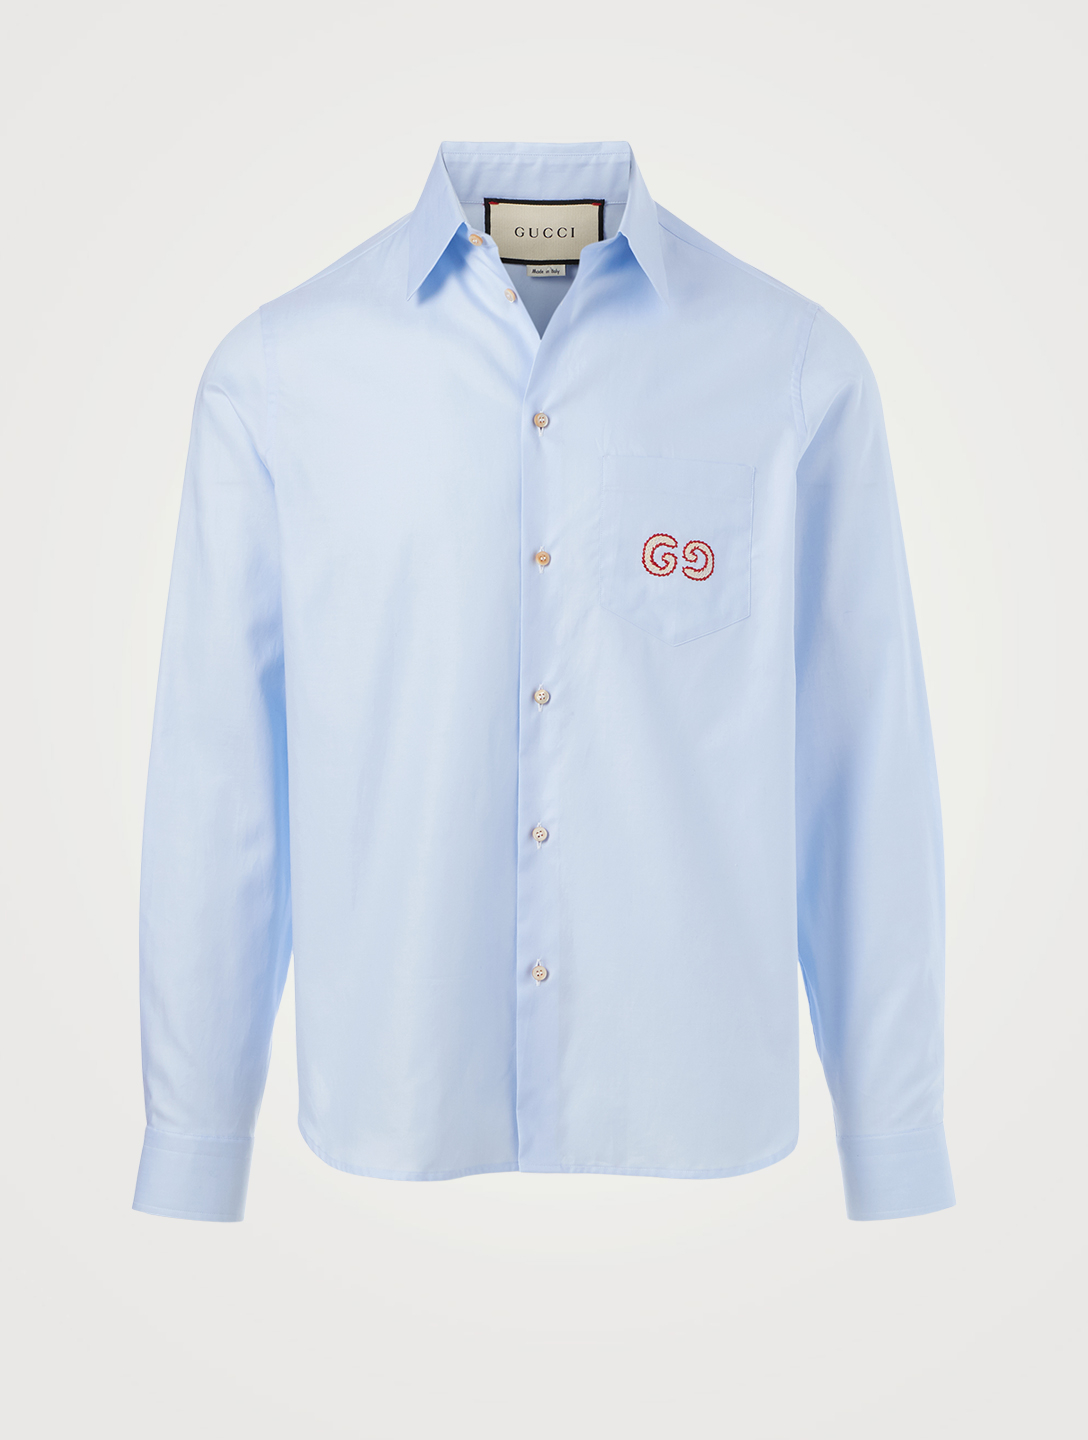 GUCCI Oxford Cotton Shirt With GG Men's Blue